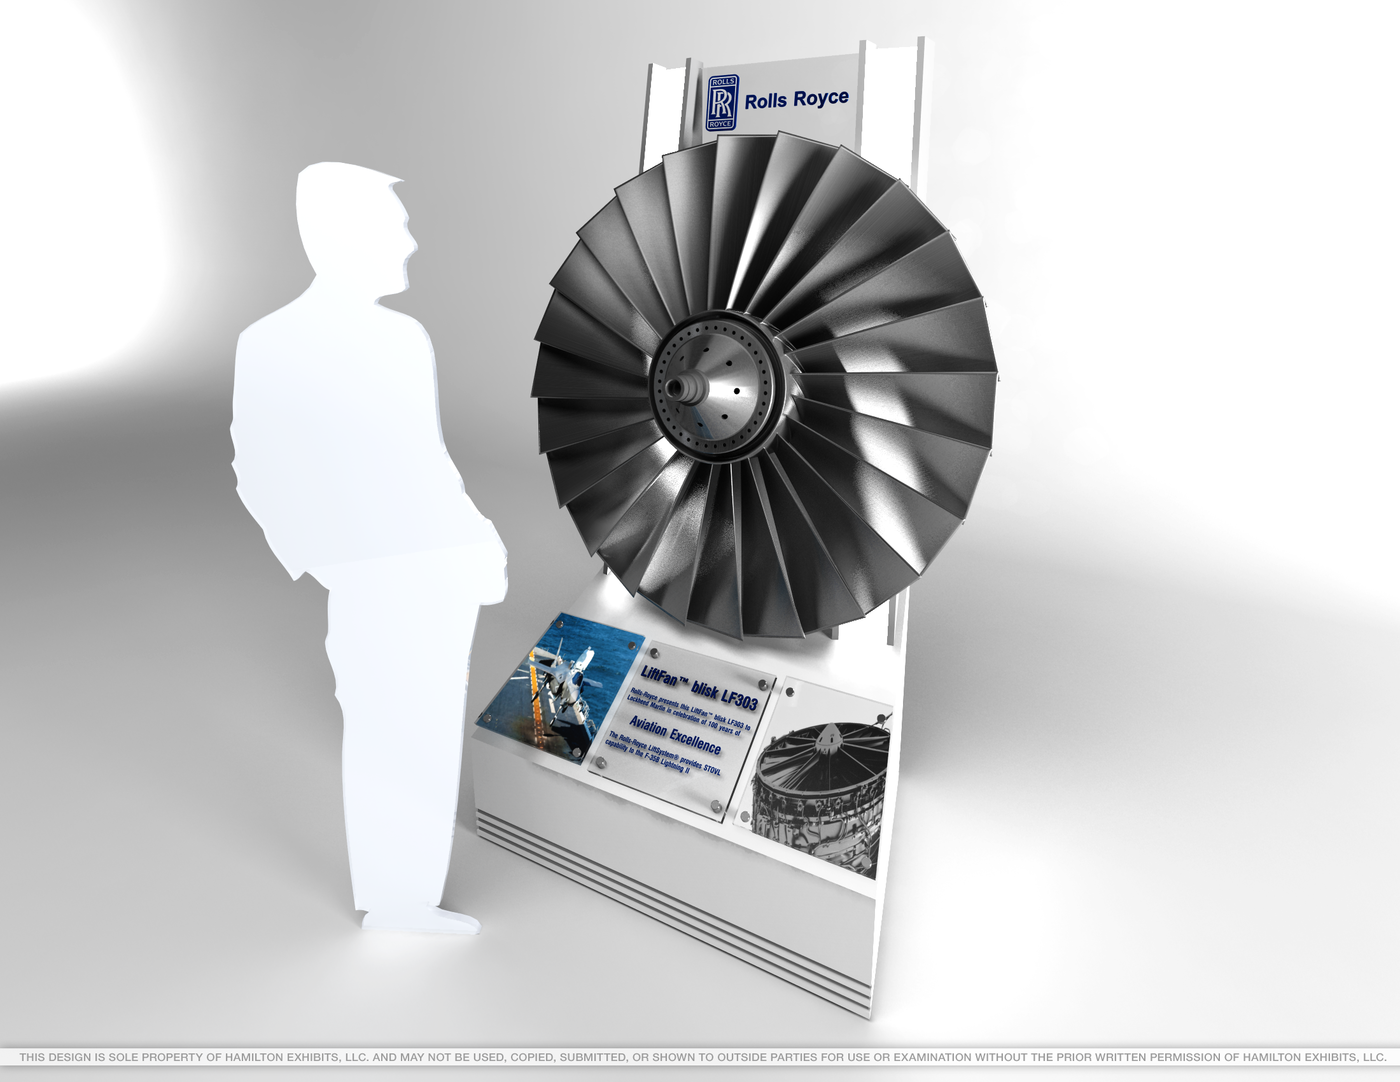 Rolls Royce: Blisk Fan Display by Aric Furfaro at Coroflot com